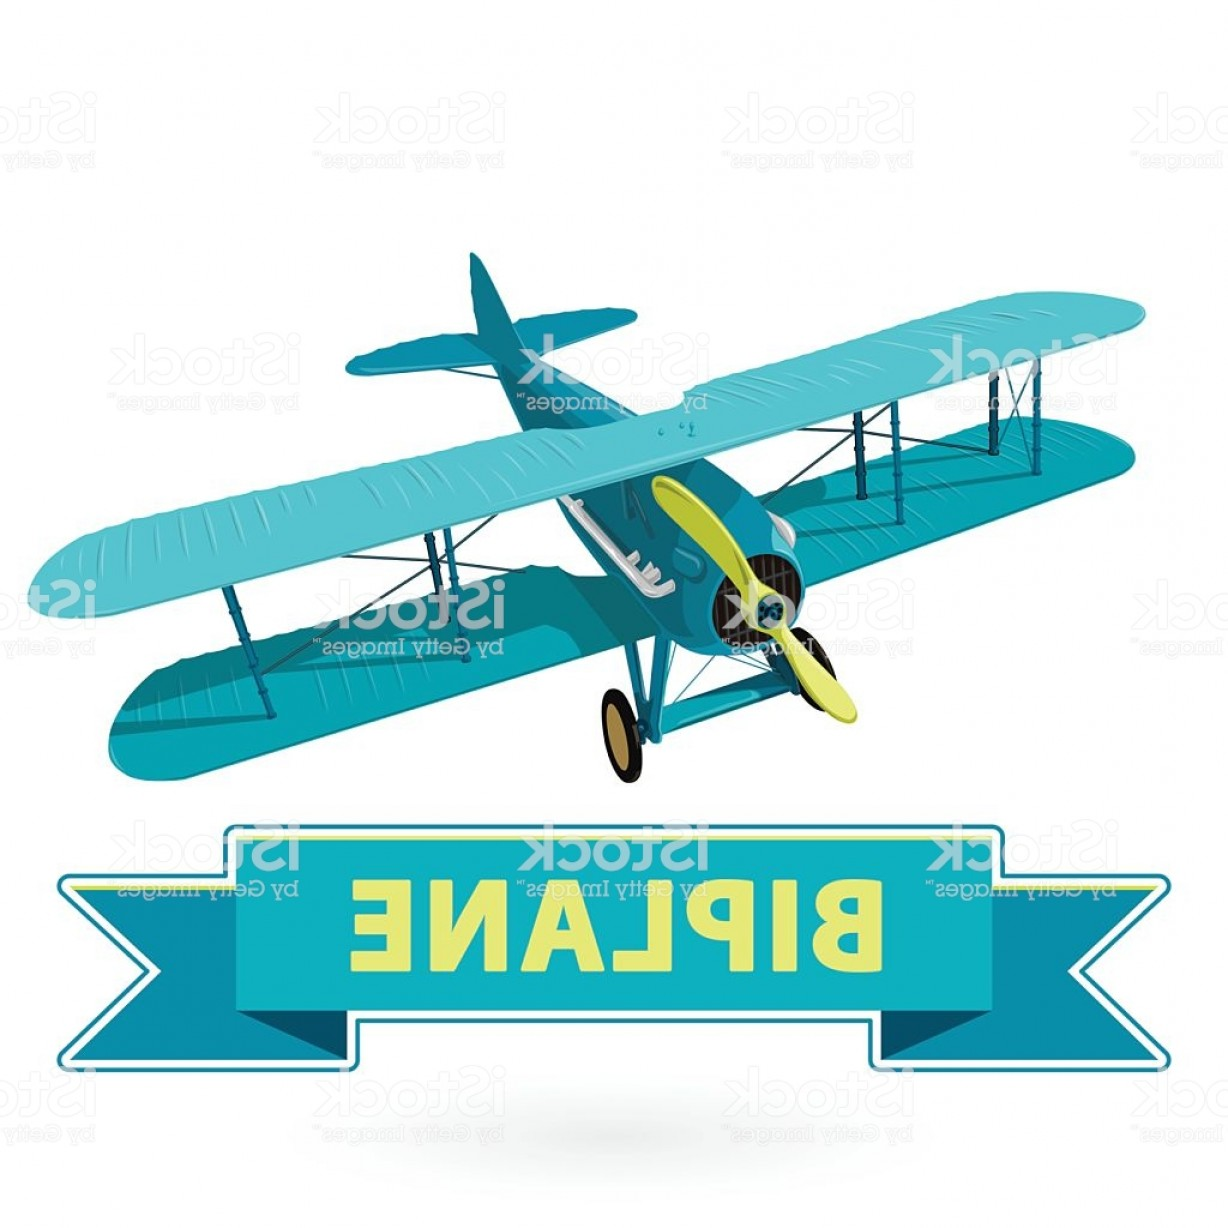 Old School Airplane Fighter Silhouette Vector: Biplane From World War With Blue Coating Model Aircraft Propeller Gm